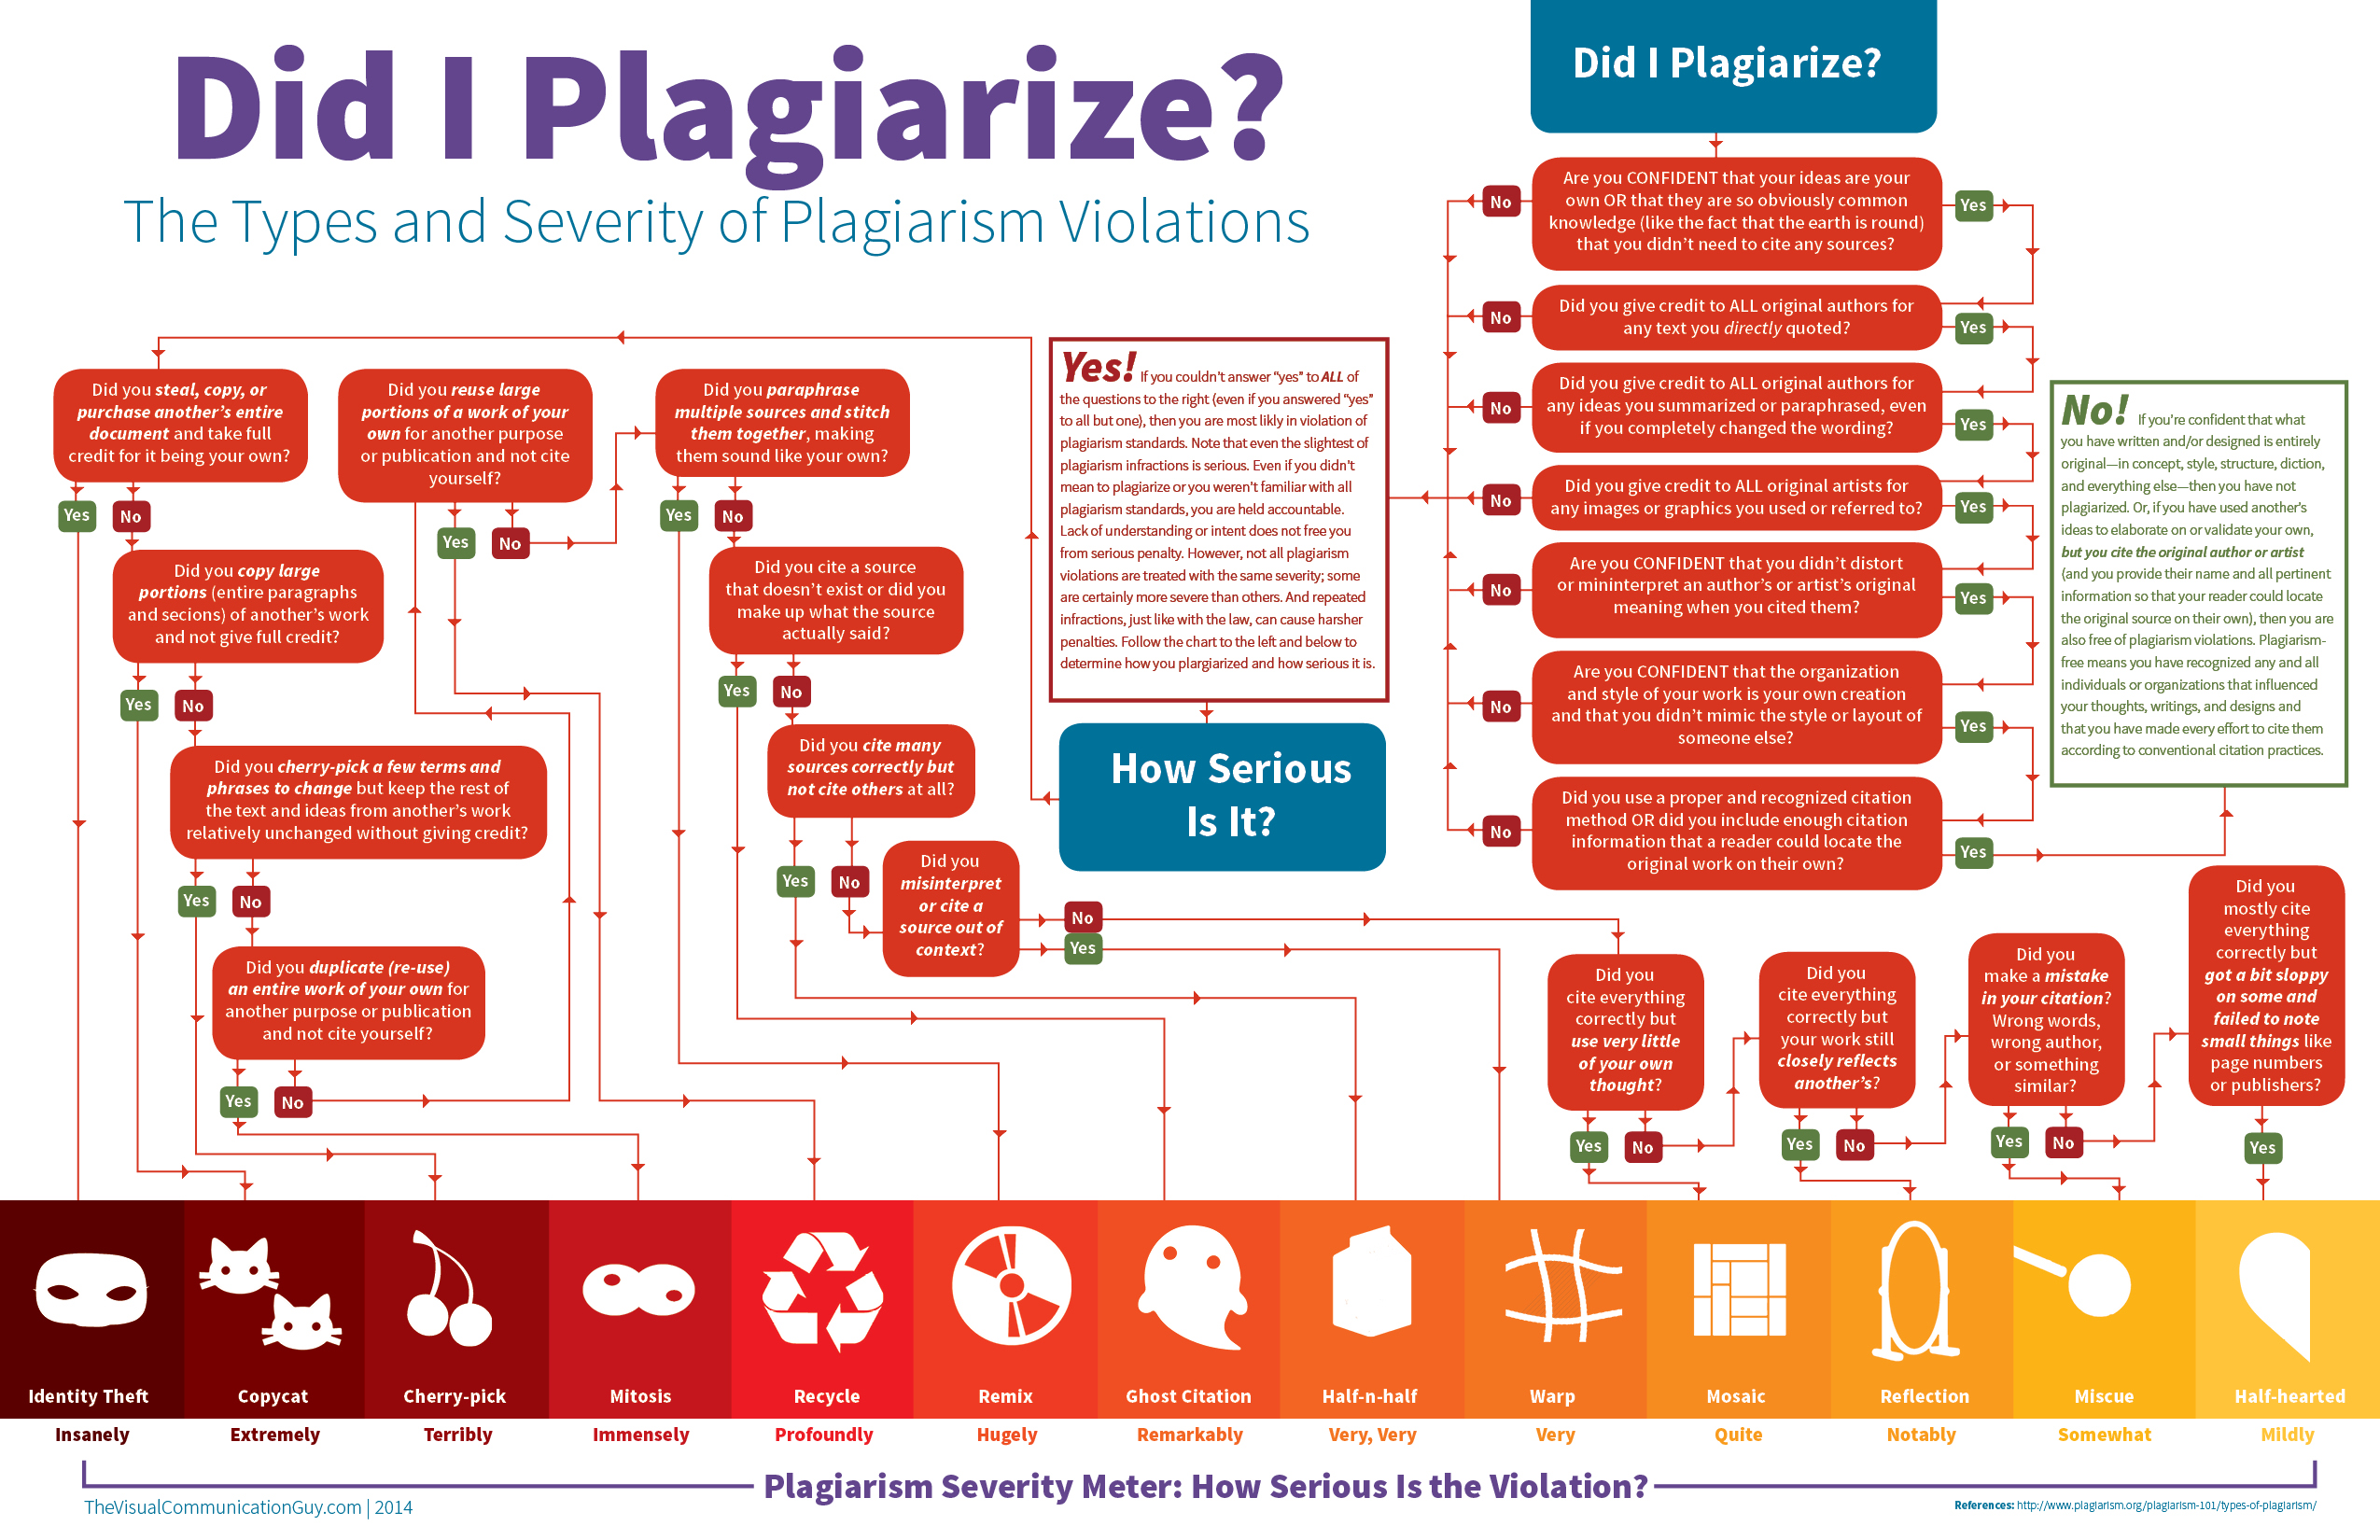 Flow chart of the types and severity of plagiarism